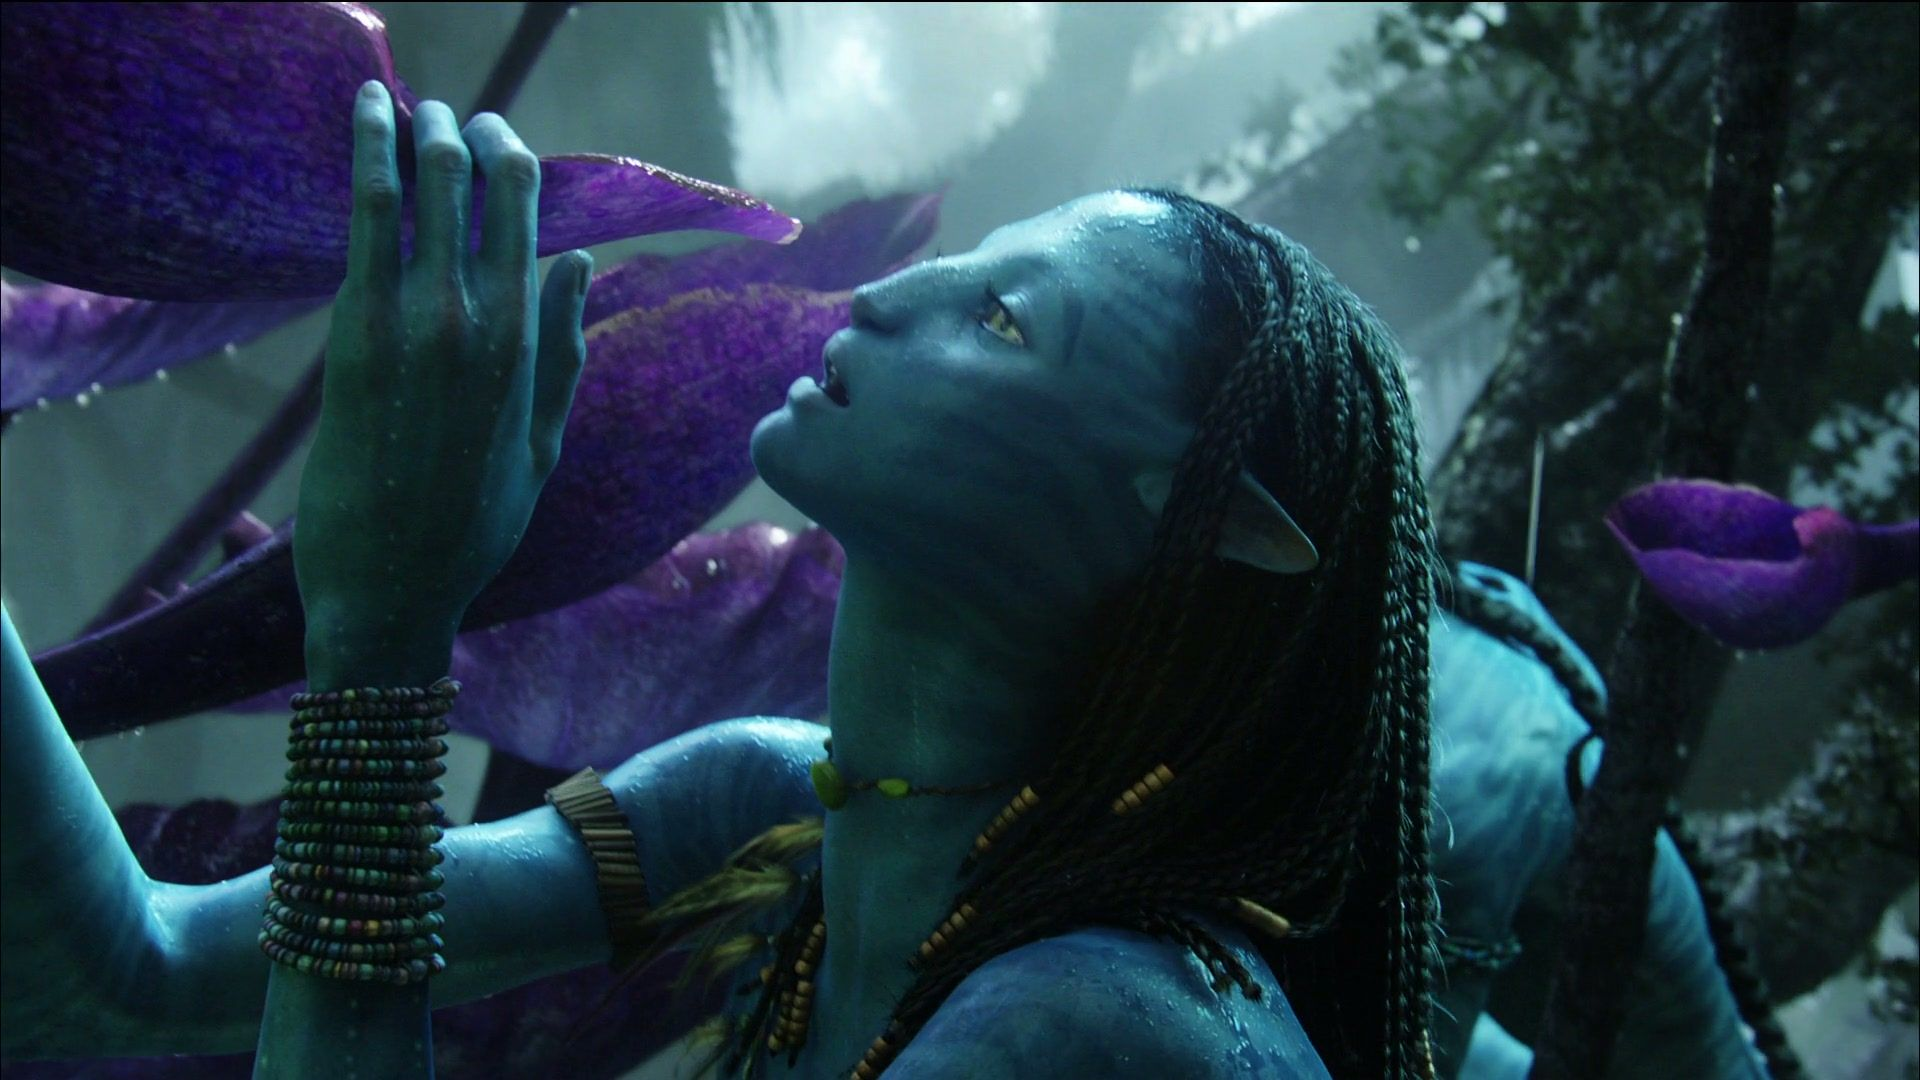 sow-avatar.1080p 3844 | james cameron, avatar and movie